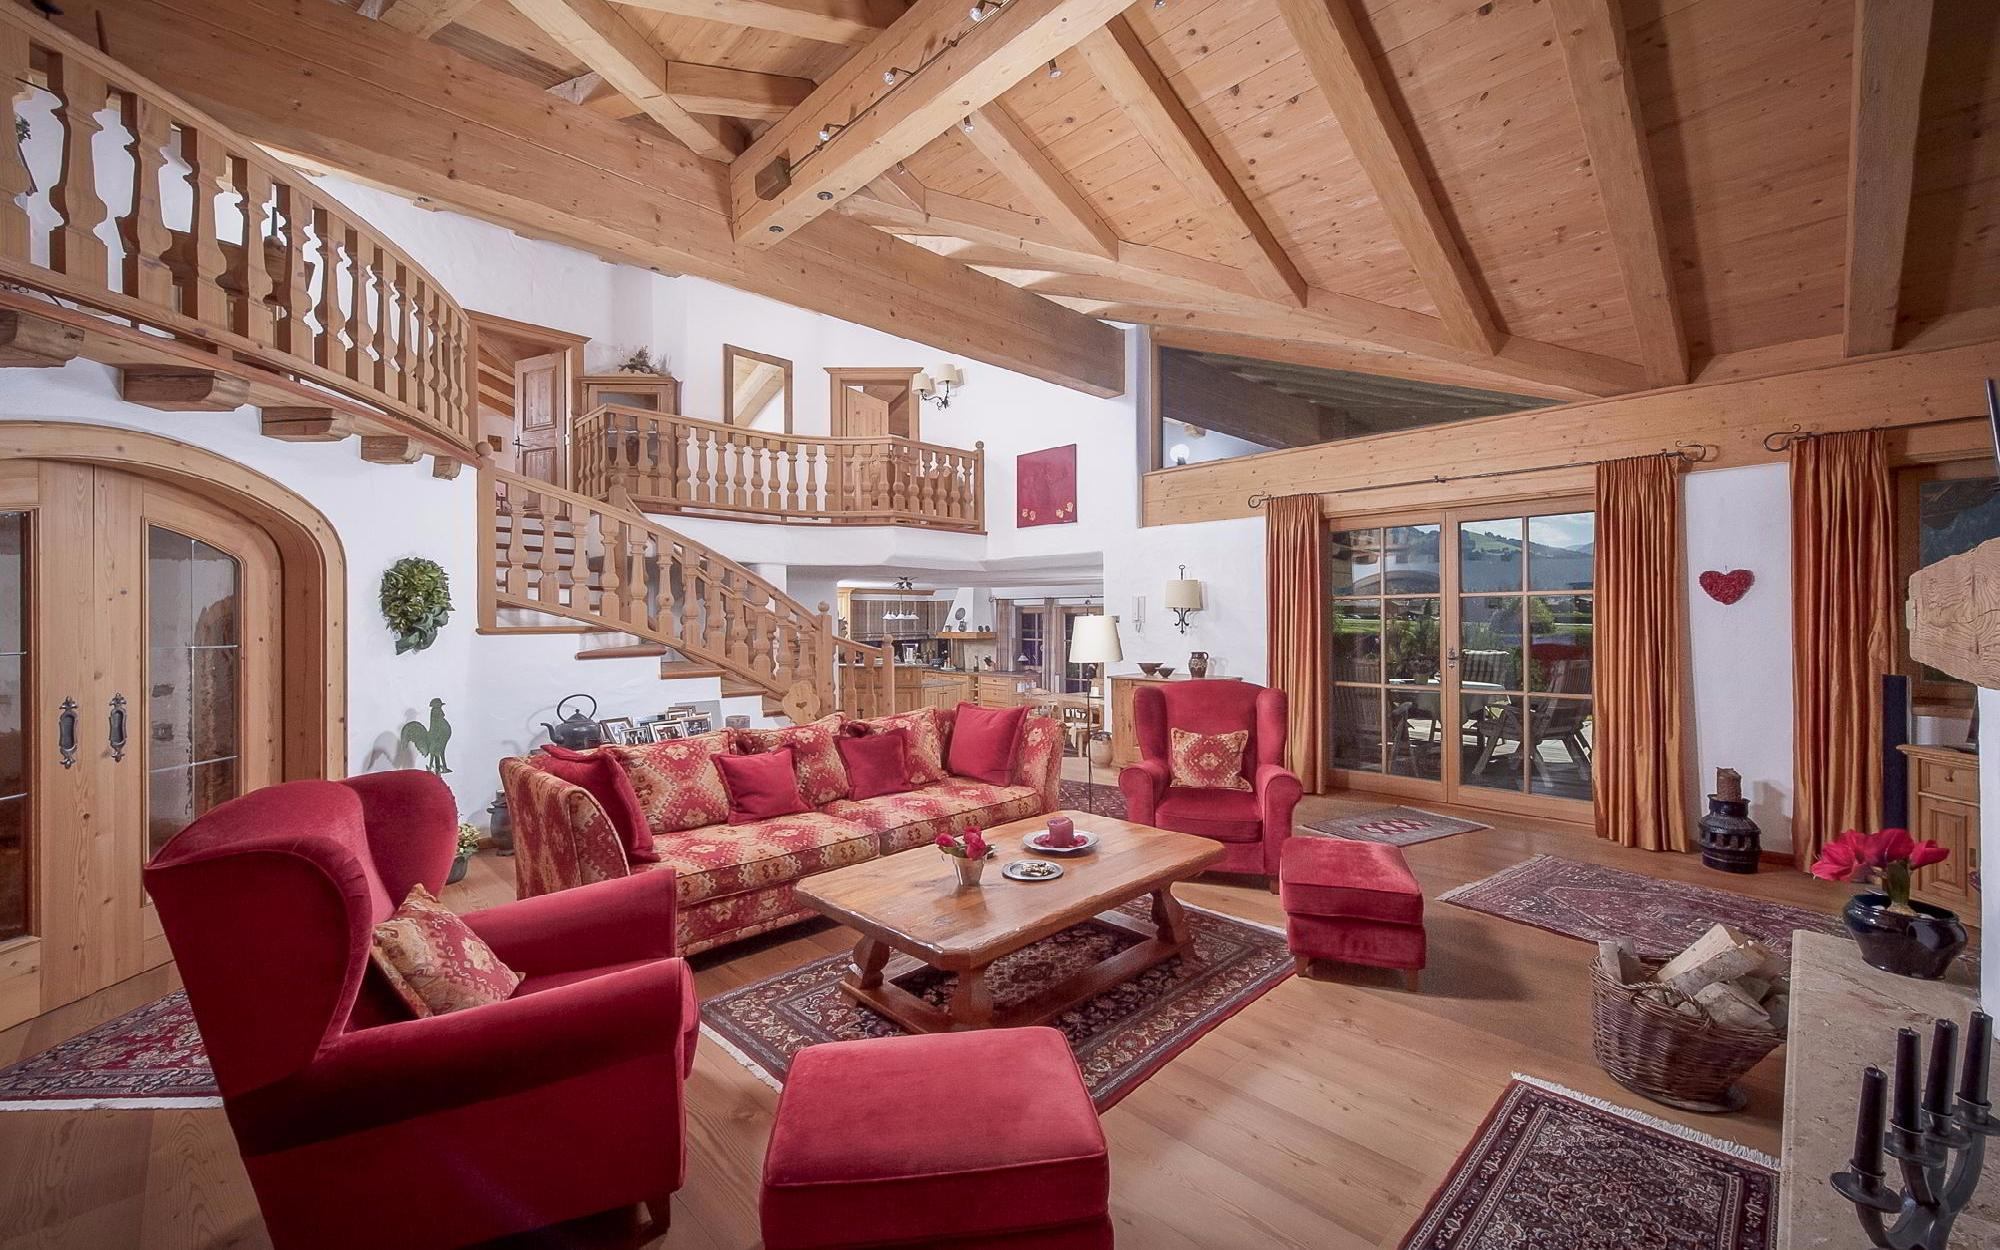 Quality country house in Tyrolean style close to Kitzbuehel For Sale - Reith near Kitzbuehel